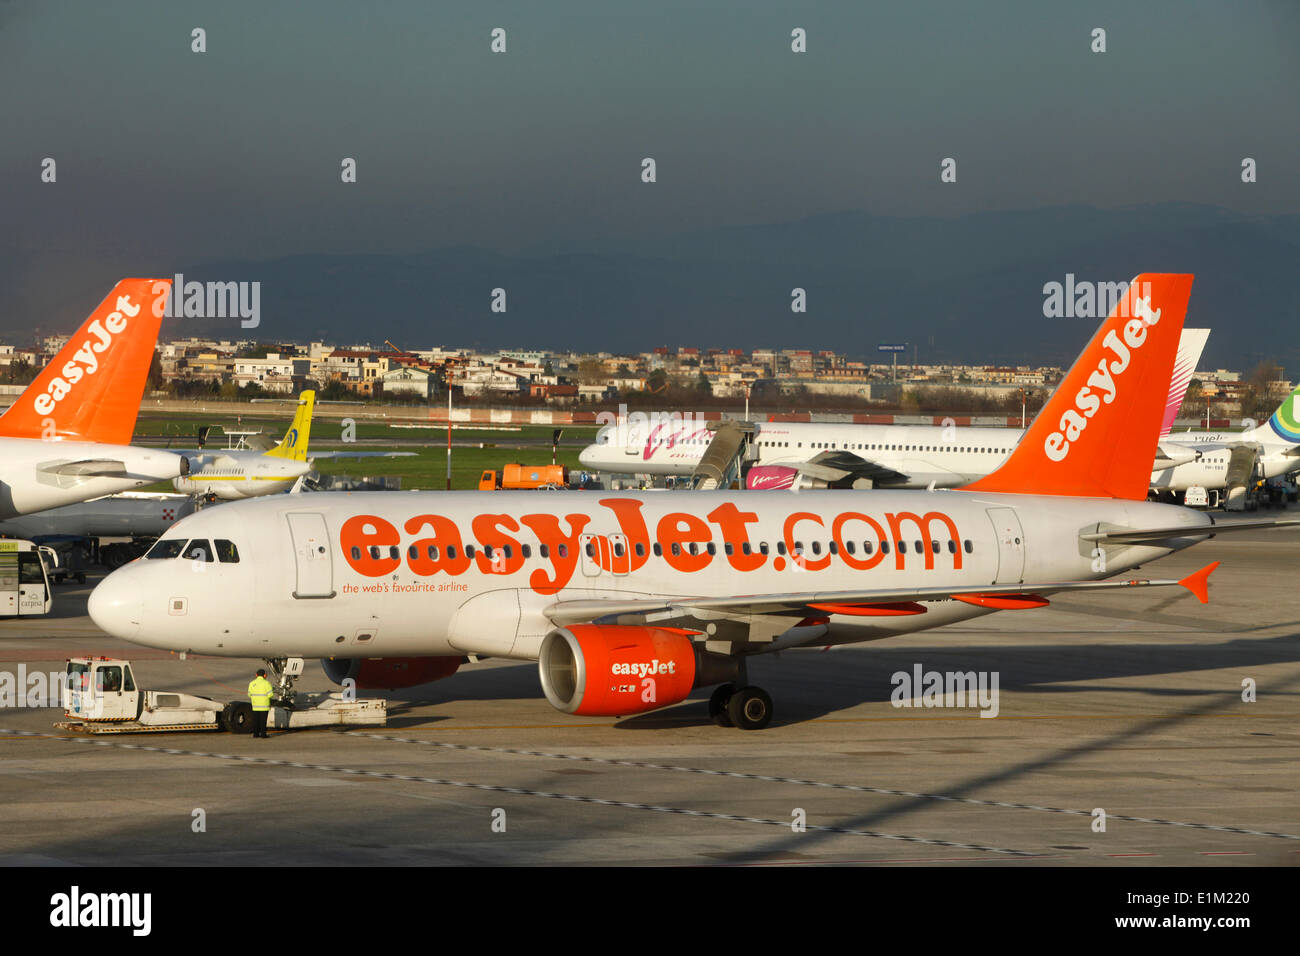 Low-cost airliner at Naples airport - Stock Image